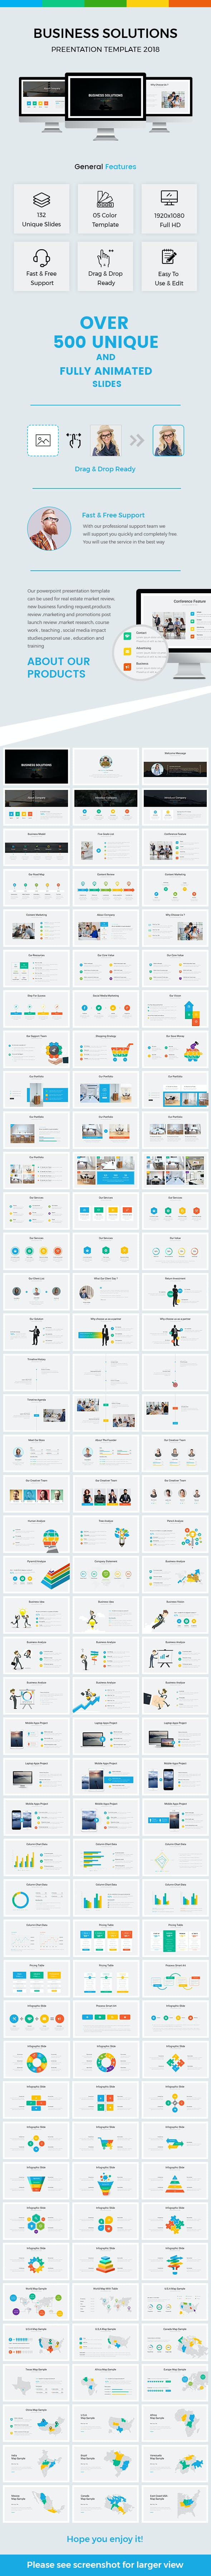 business solutions powerpoint template 2018 by light slides